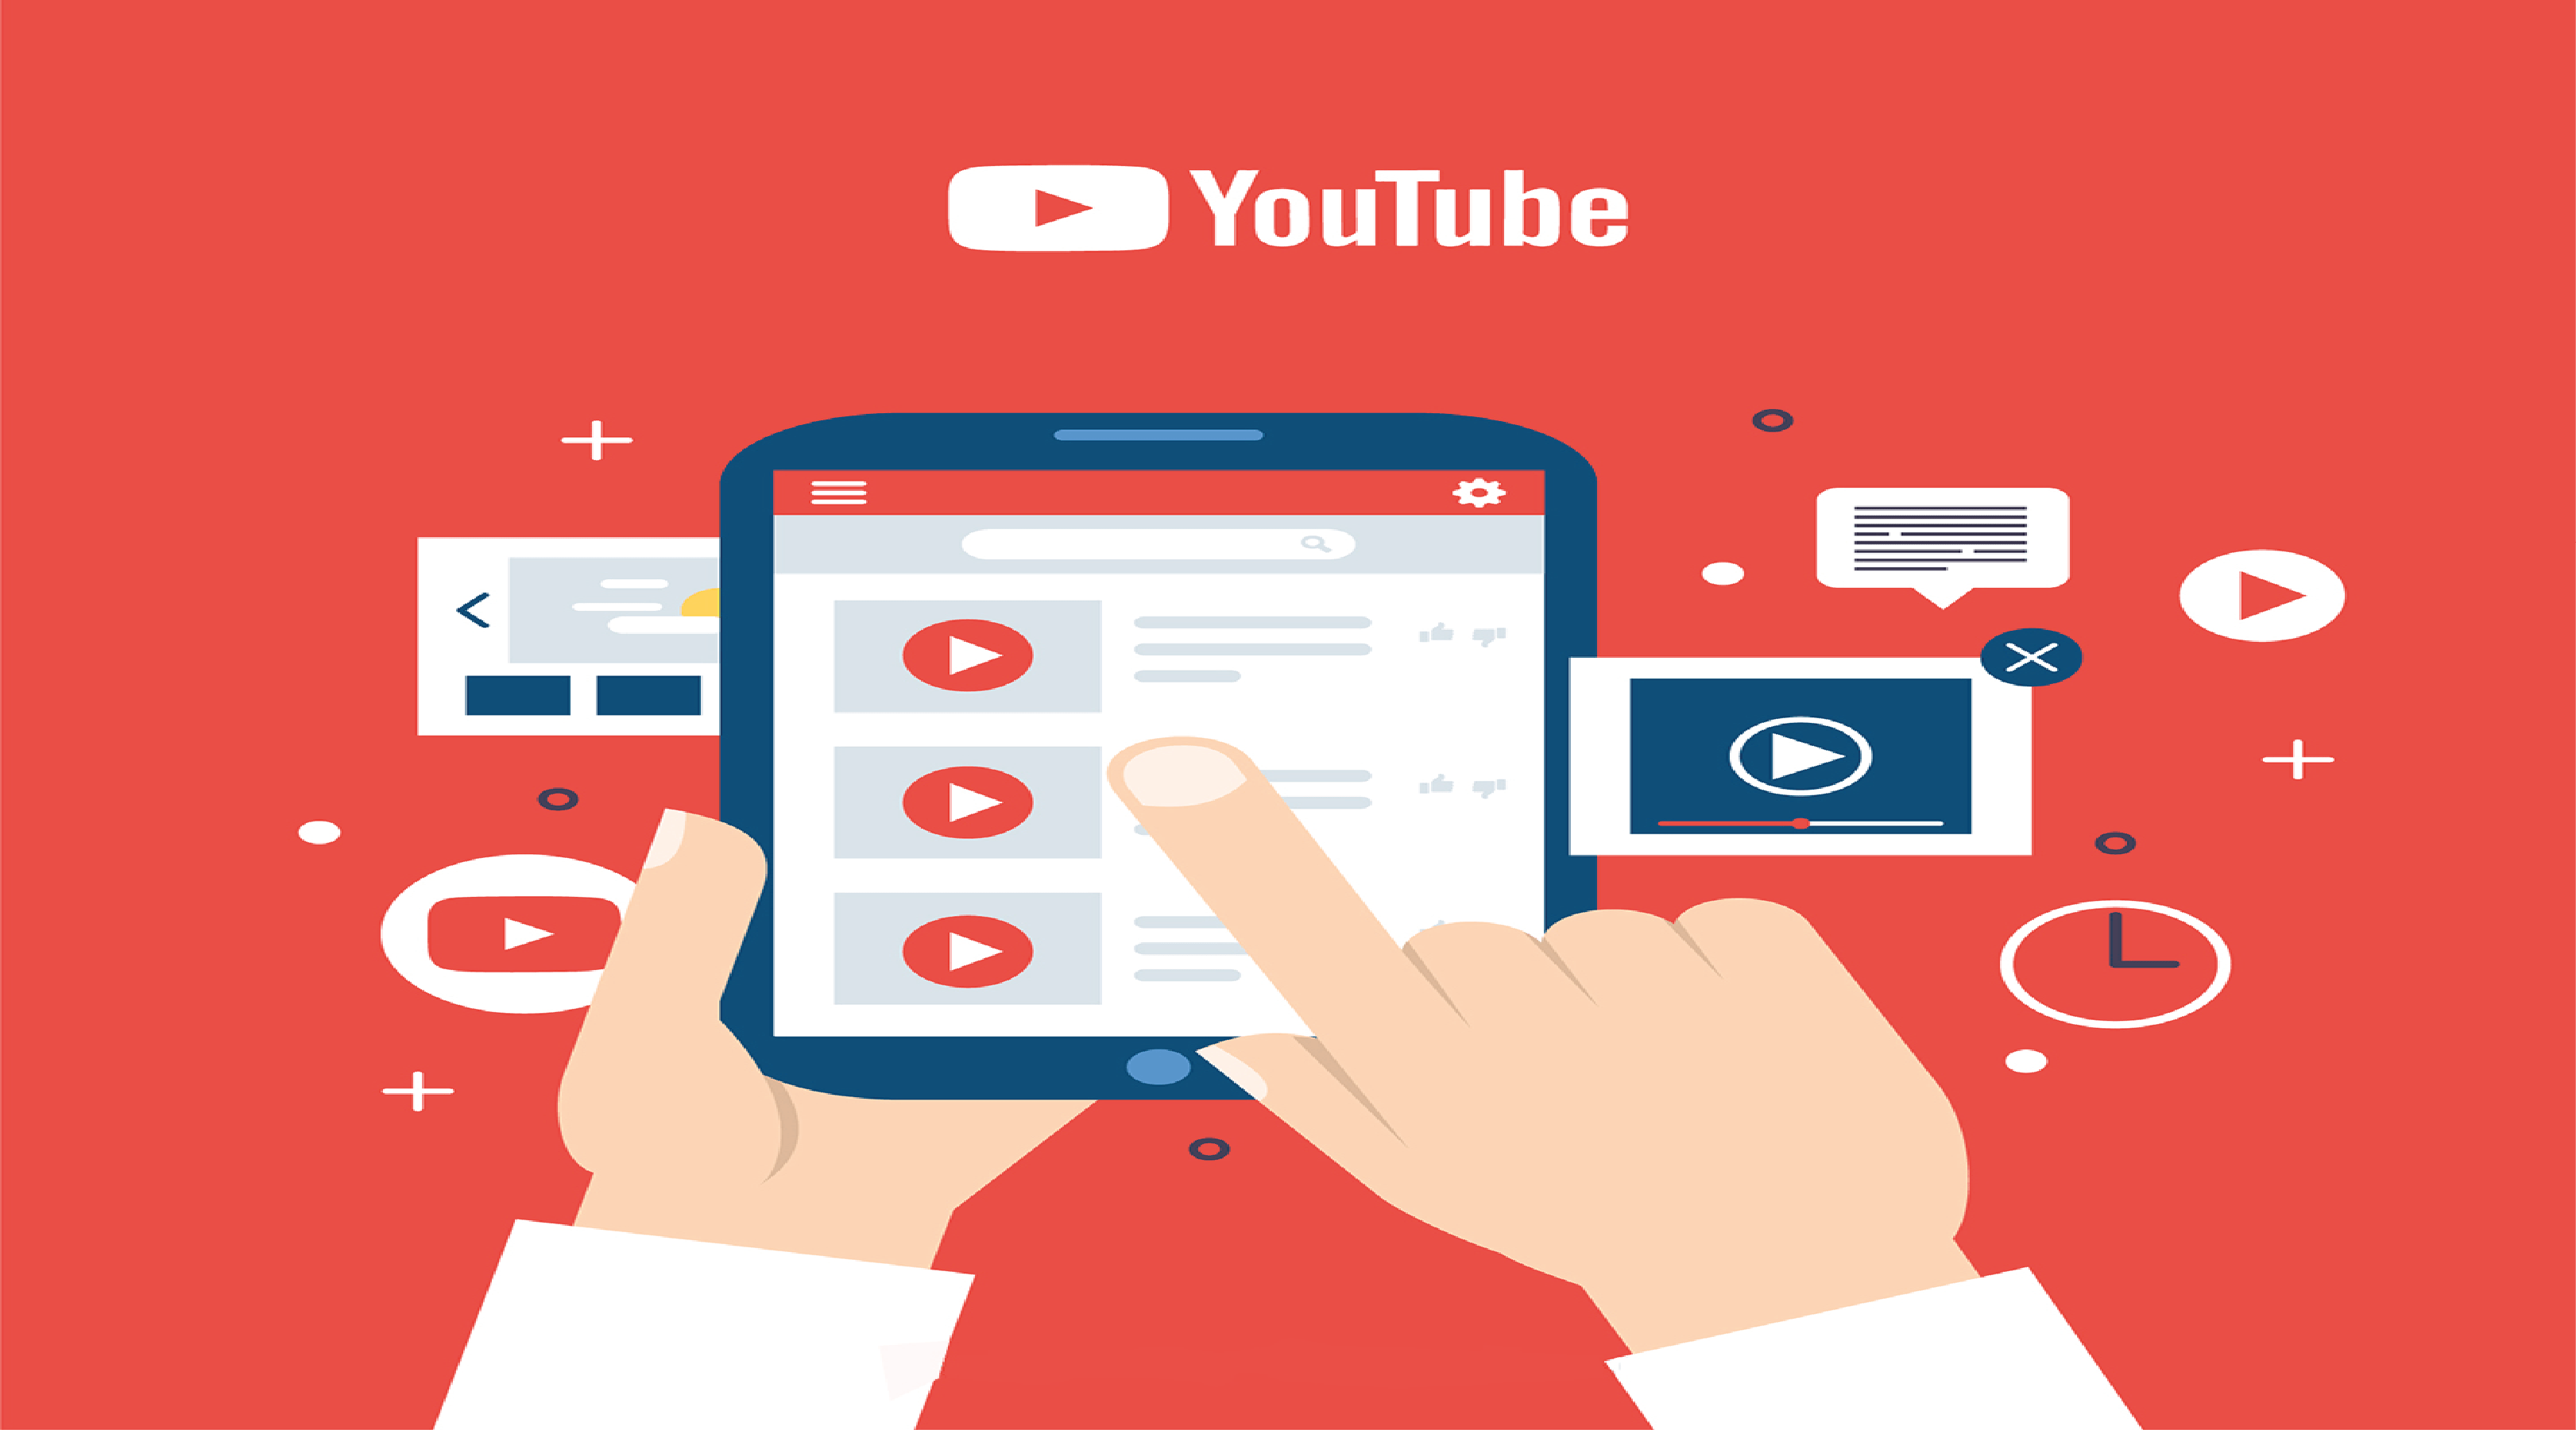 how to download youtube videos free using any device like android, laptop, smartphone, window 10, computer